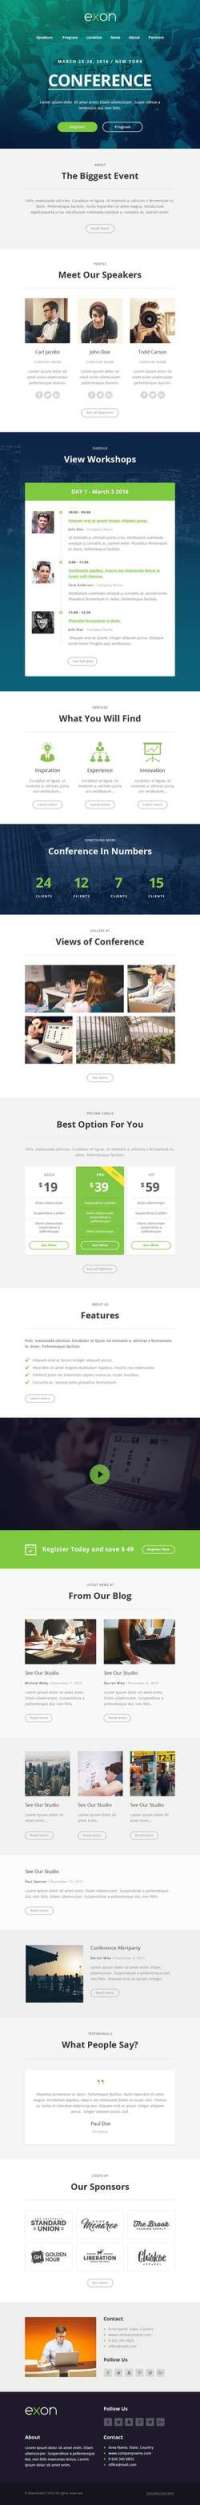 Exon - Responsive Email and Newsletter Template